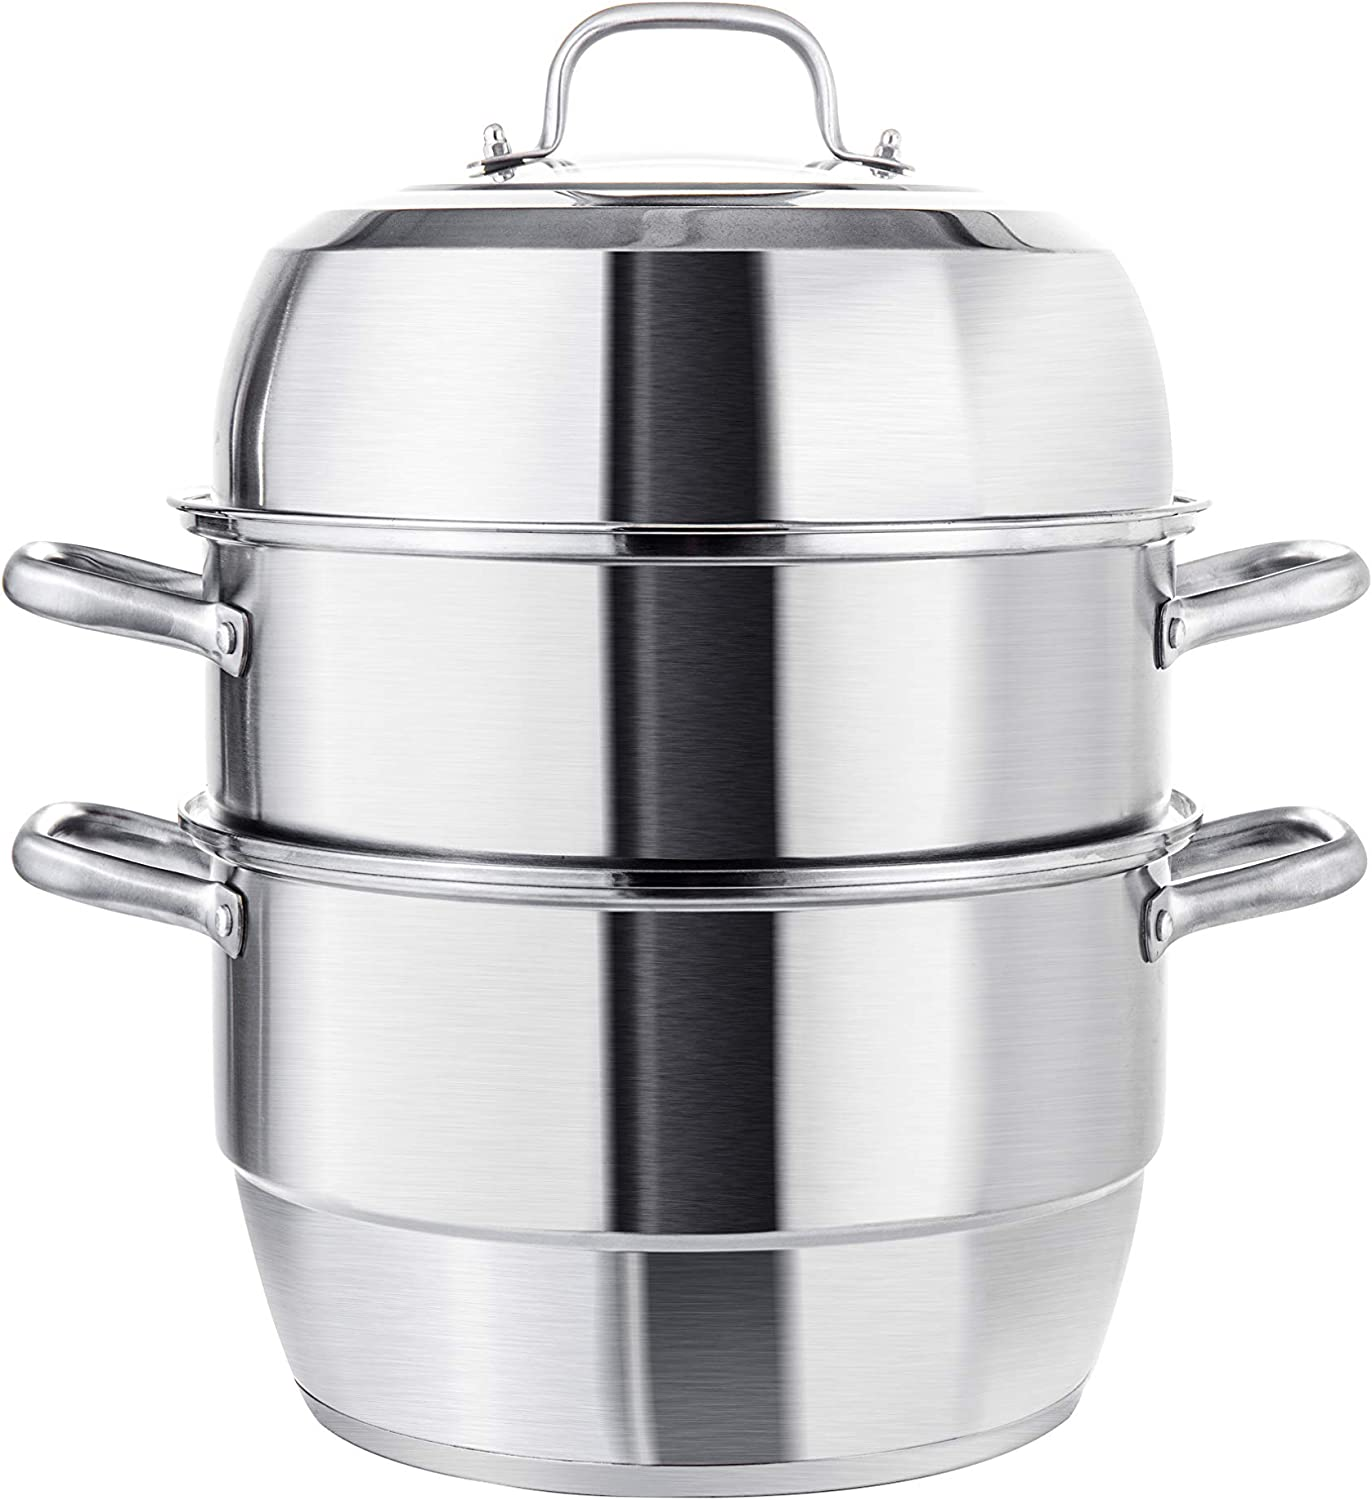 VENTION Heavy Duty Stainless Steel Steamer Pot, Triple-Tier Food Grade Stacked Stream Pot, 23 Quarts